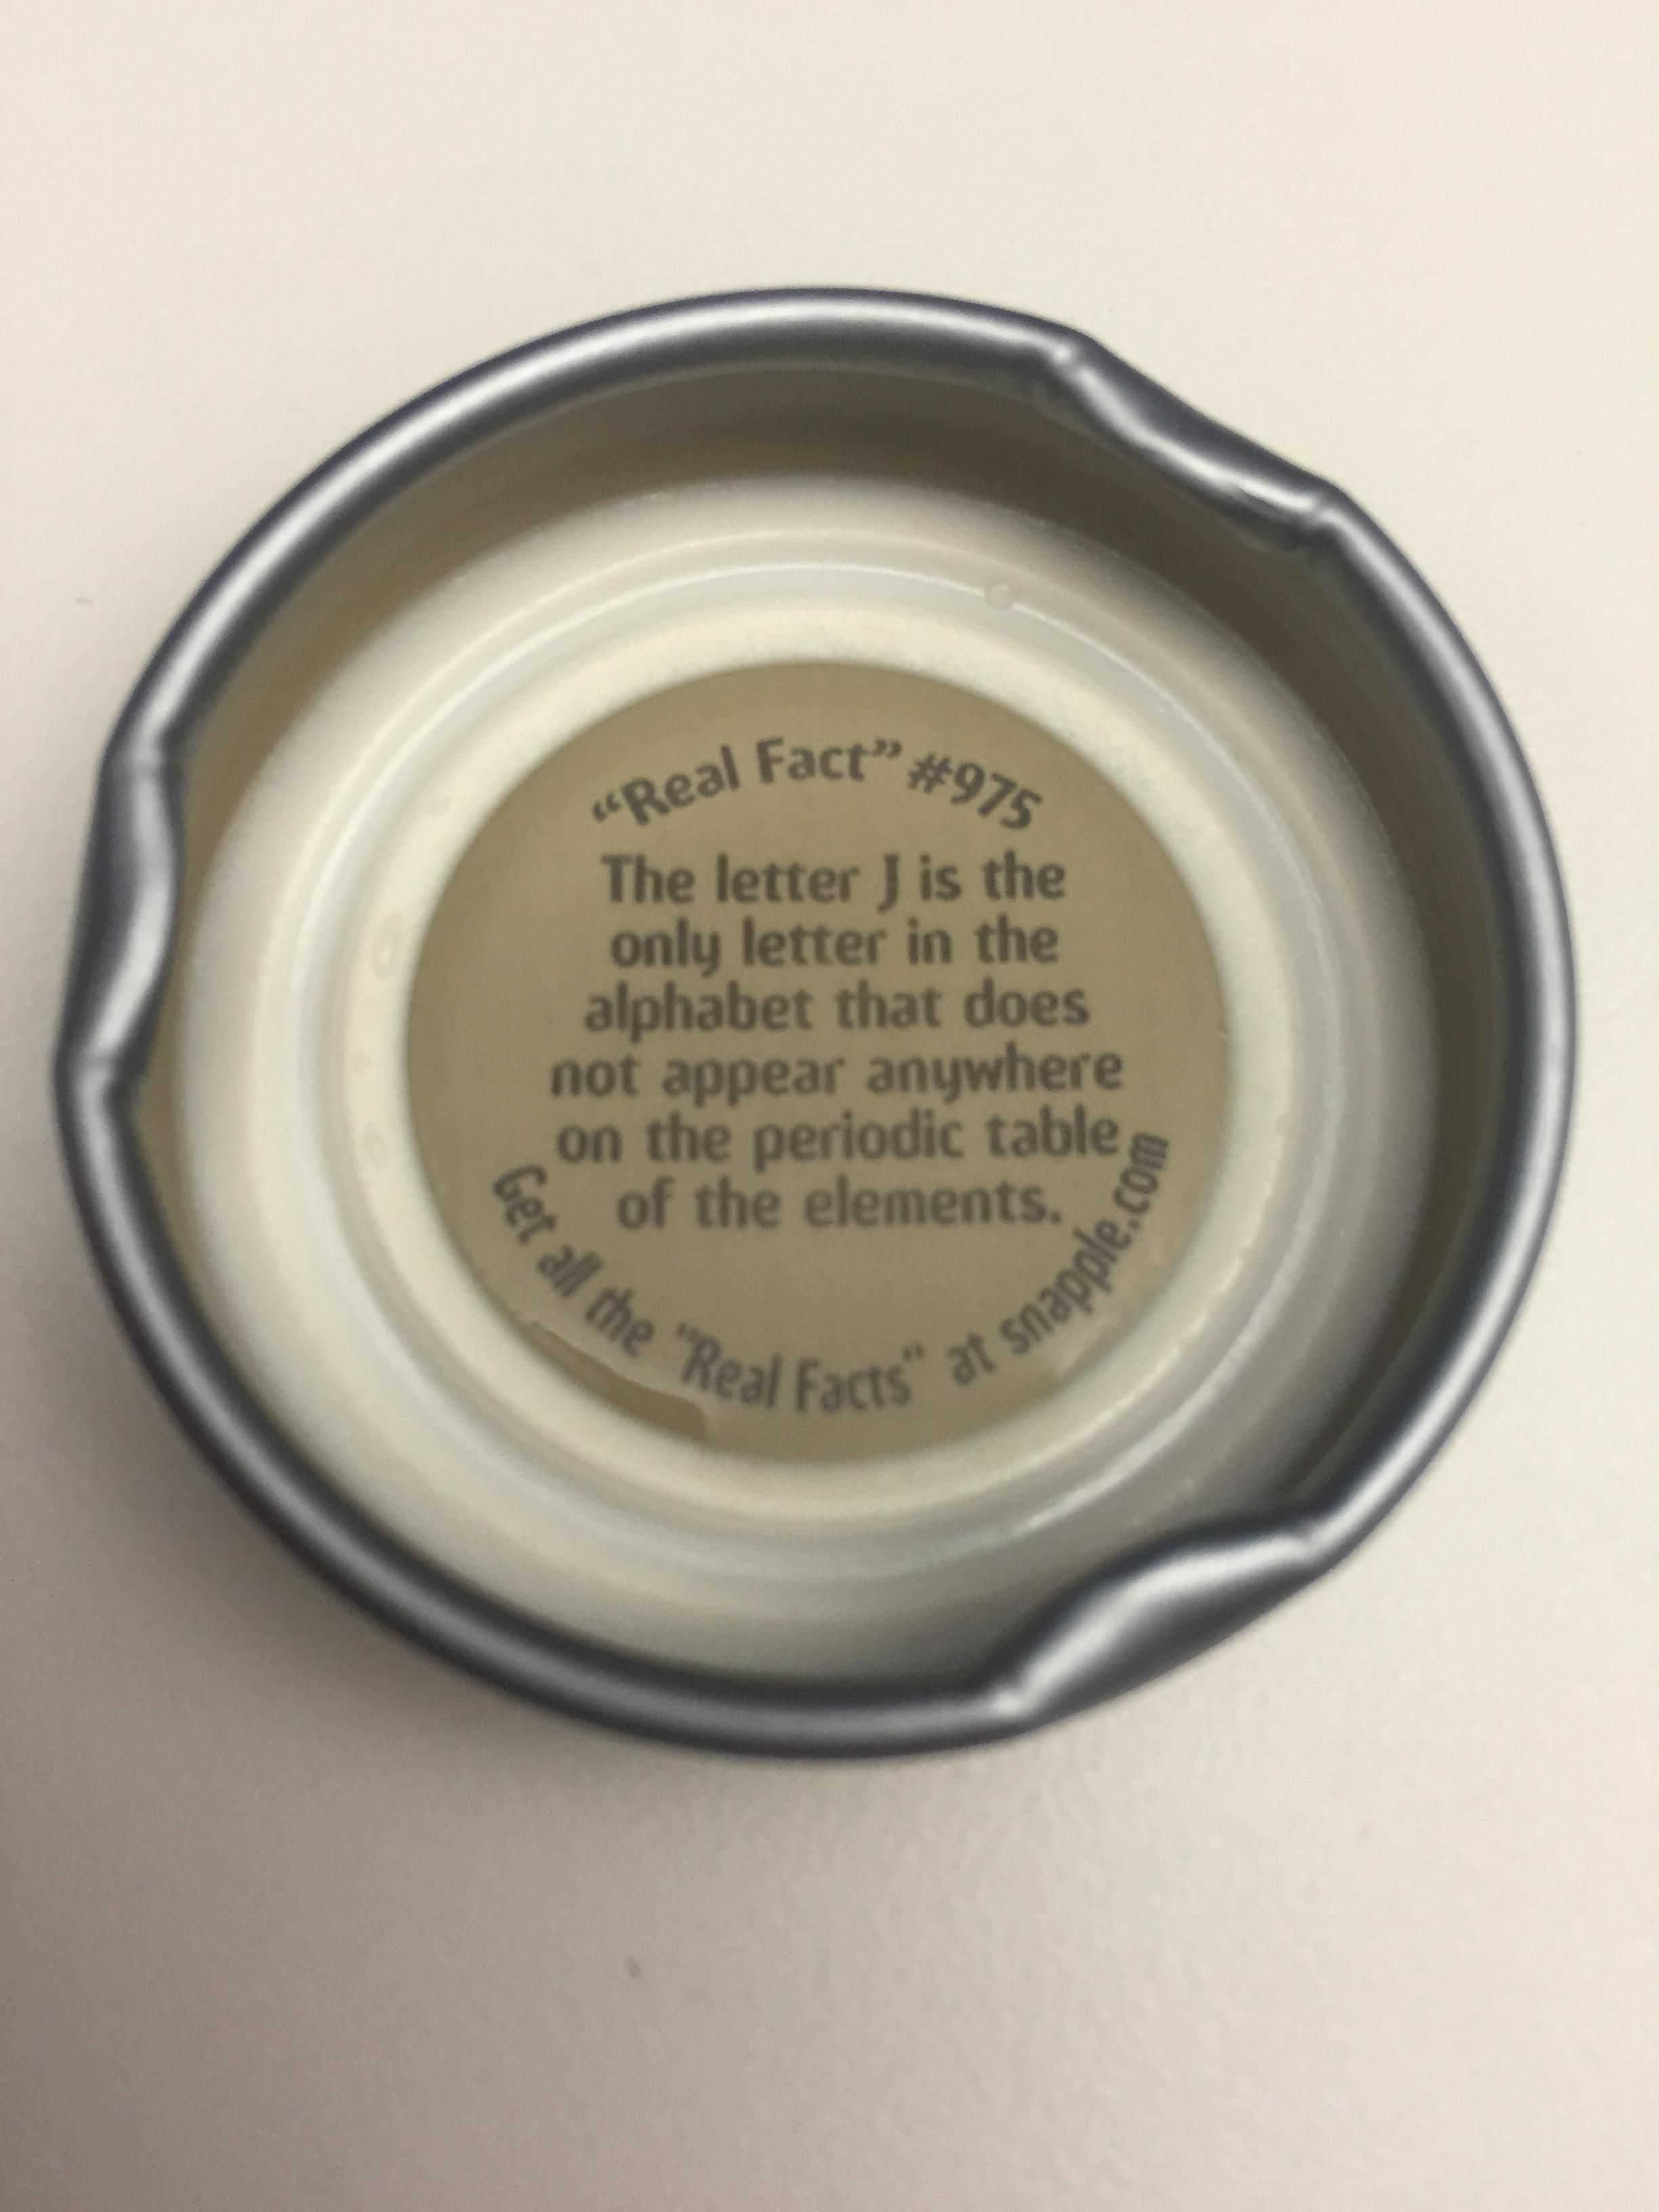 Snapple cap cap random and random facts bc the letter j doesnt exist in latin which is the language that urtaz Gallery